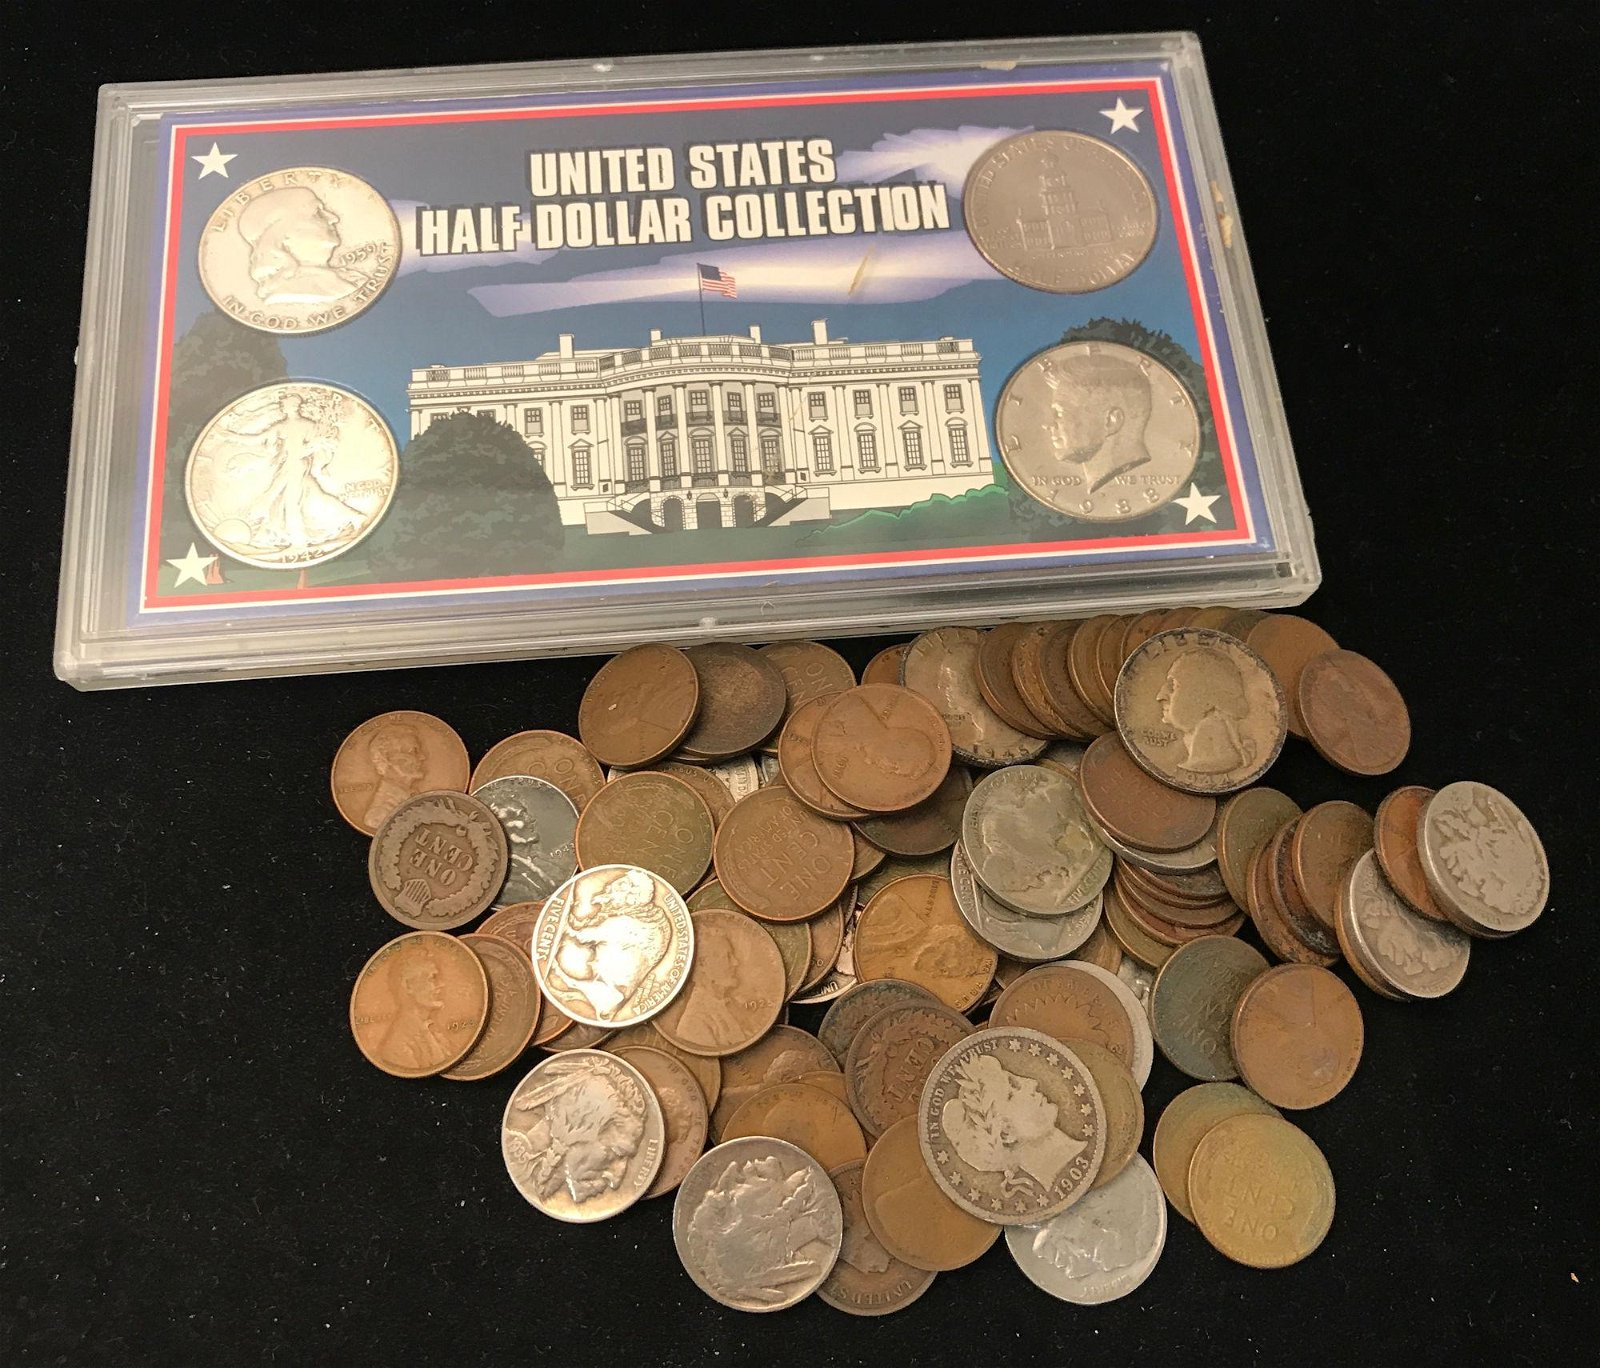 MIXED LOT INCLUDING U.S. HALF DOLLAR COLLECTION COIN